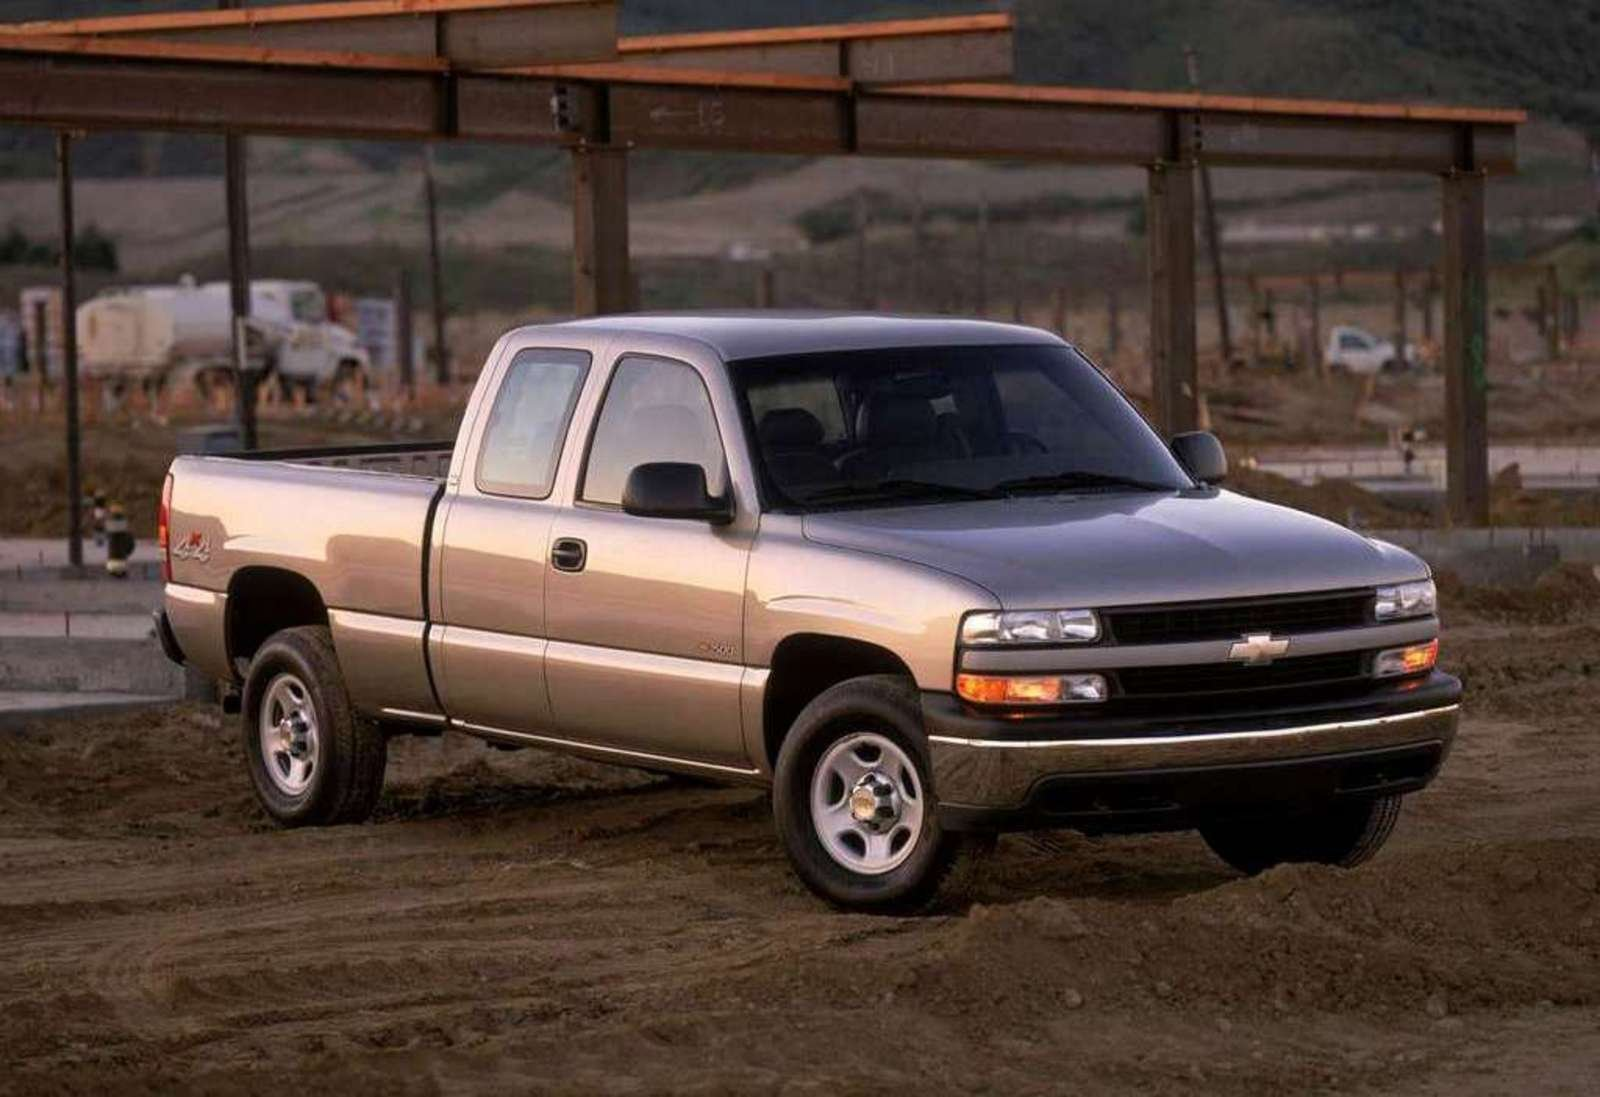 Truck chevy 1980 truck : Chevrolet Reviews, Specs & Prices - Top Speed